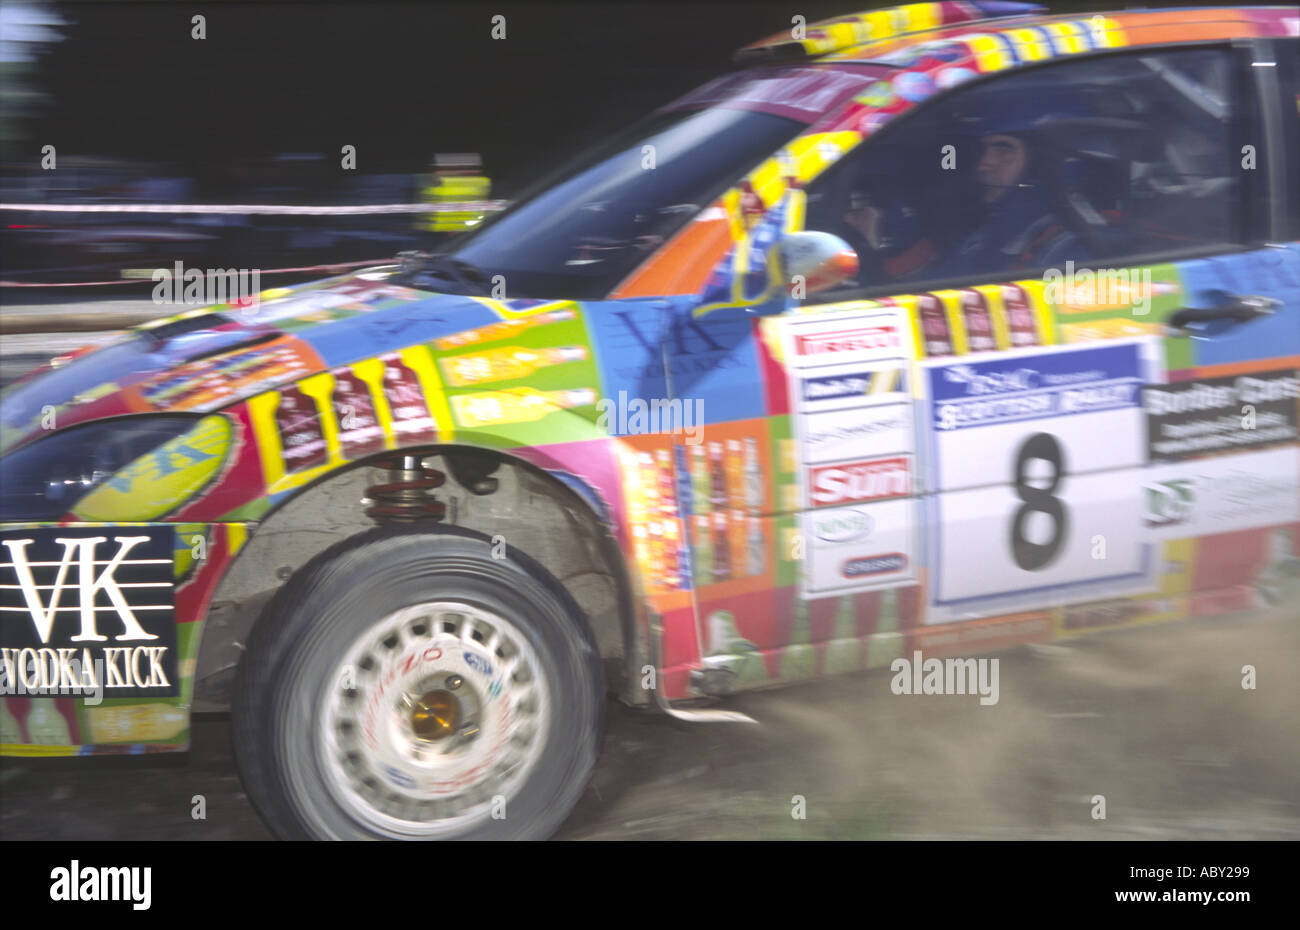 RSAC Scottish Rally close up of cornering car kicking up the dust - Stock Image